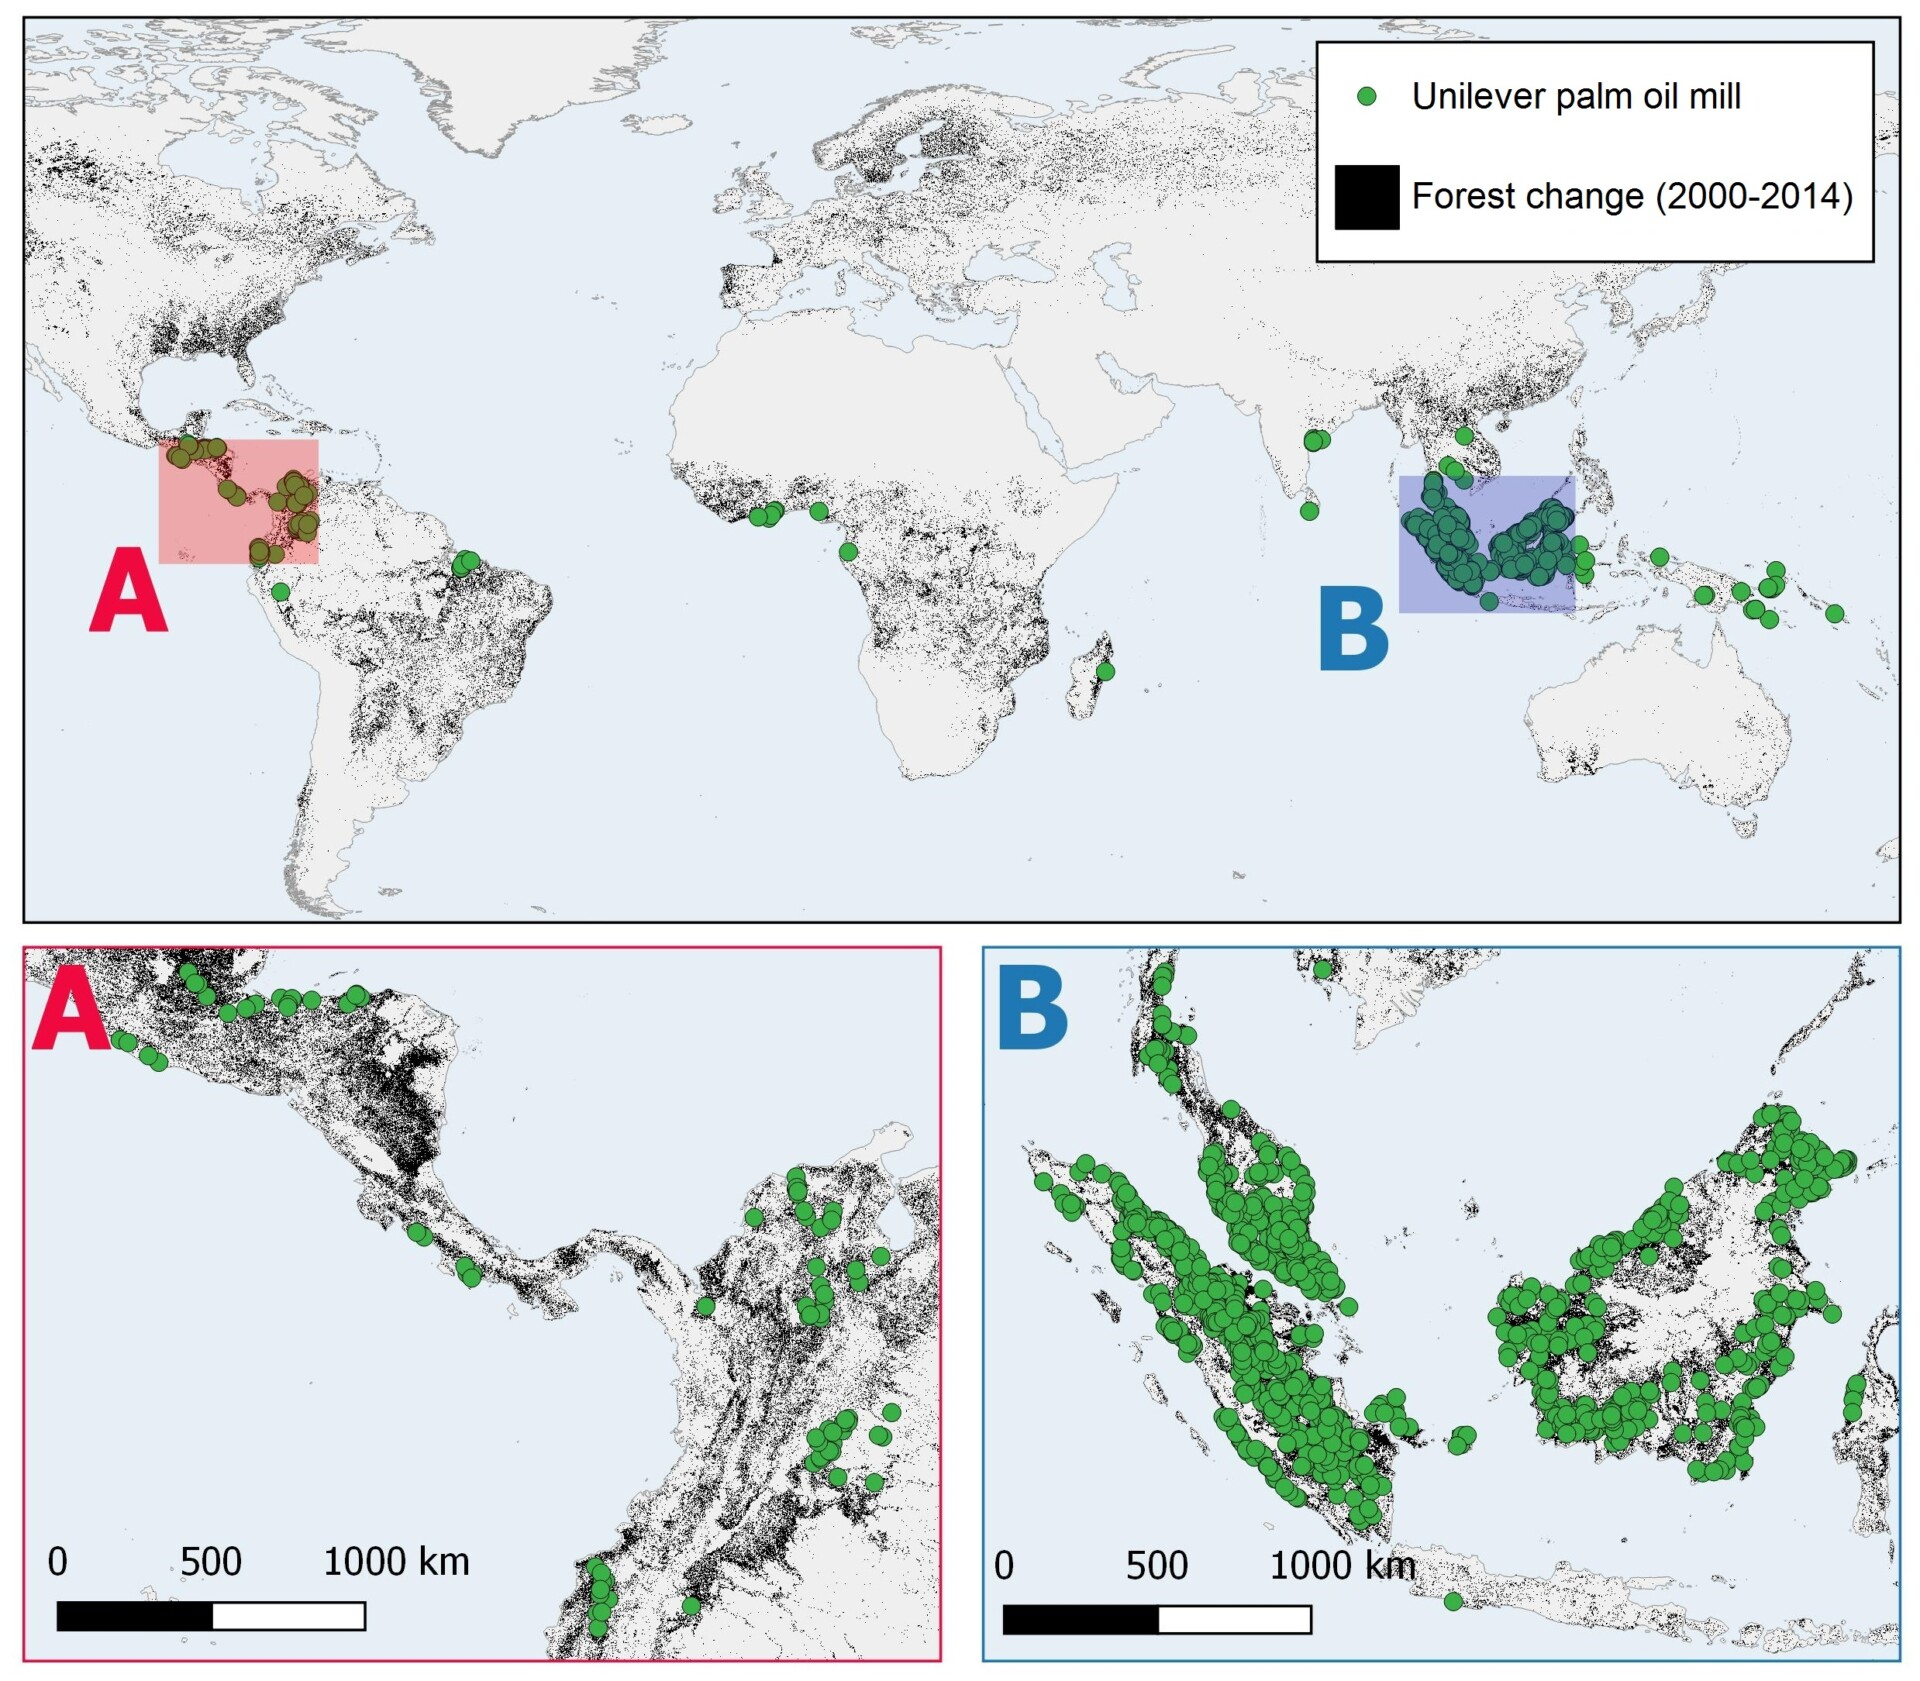 Forest change global overview